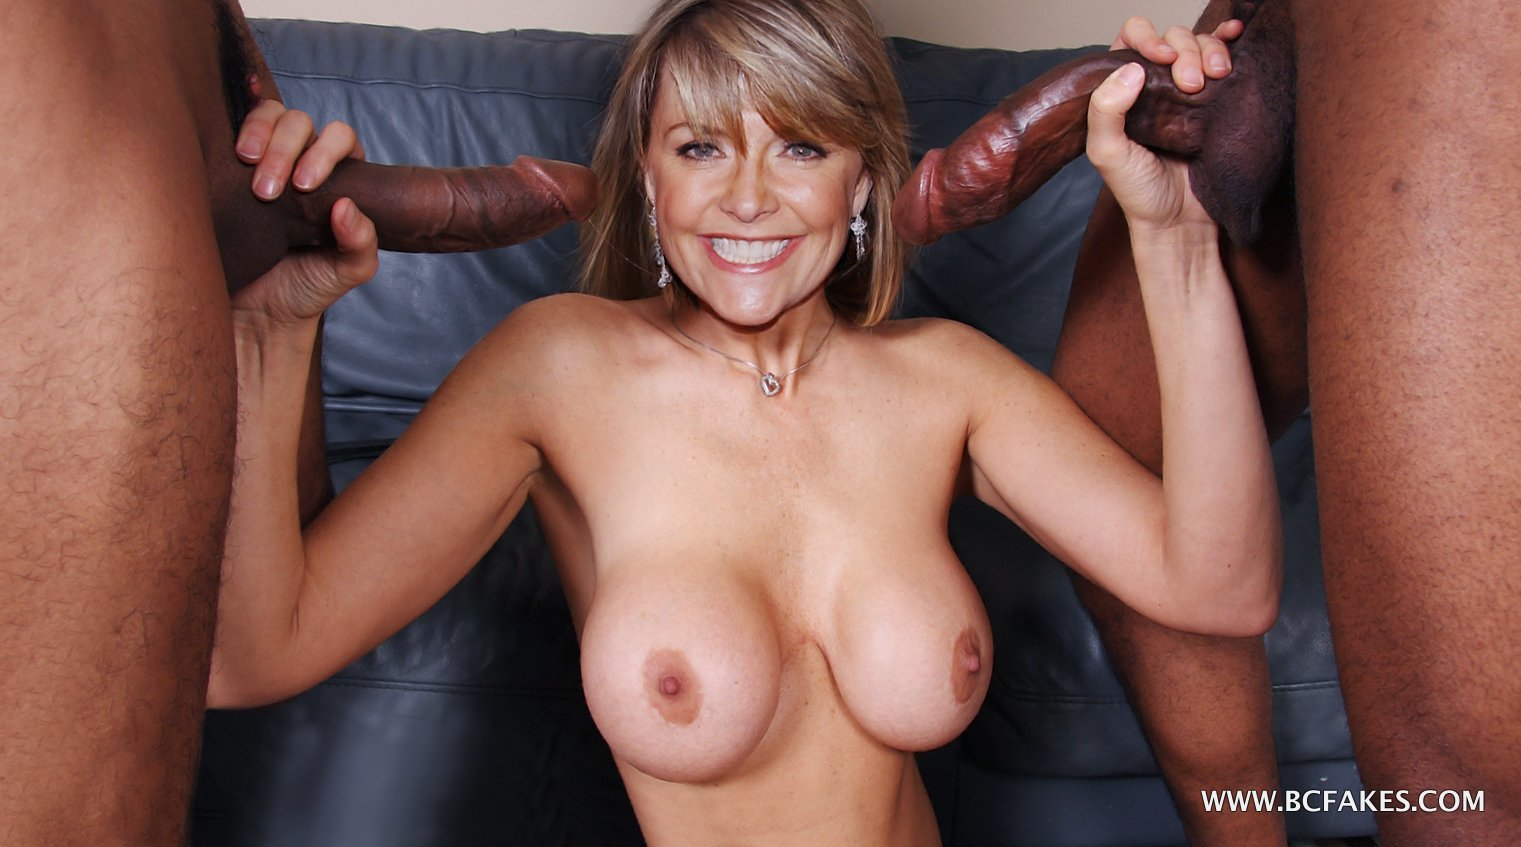 Amanda tapping totally naked enjoying showing her cute soft boobs